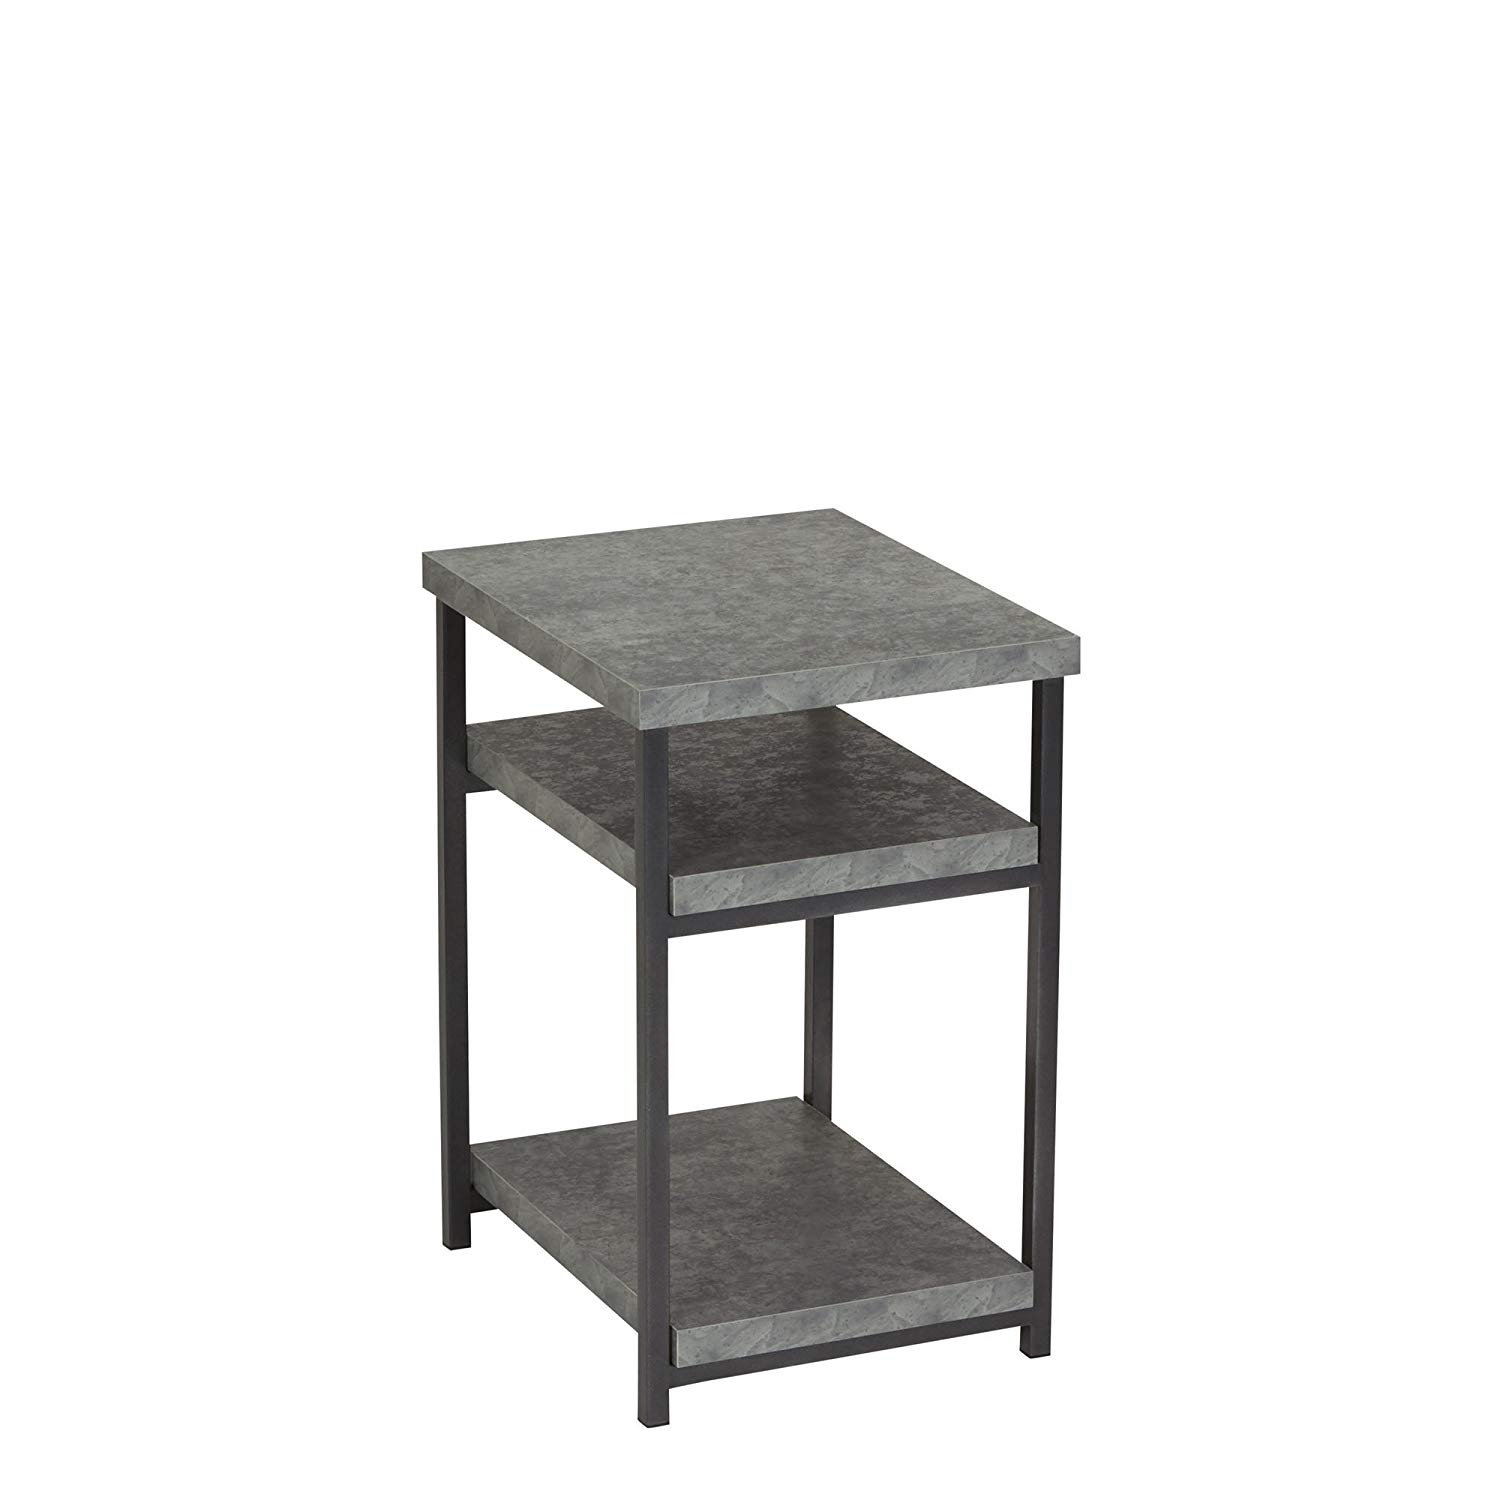 household essentials side table end with room stacking accent shelf for storage faux slate concrete kitchen dining floor edging best home decor ping websites large ginger jar